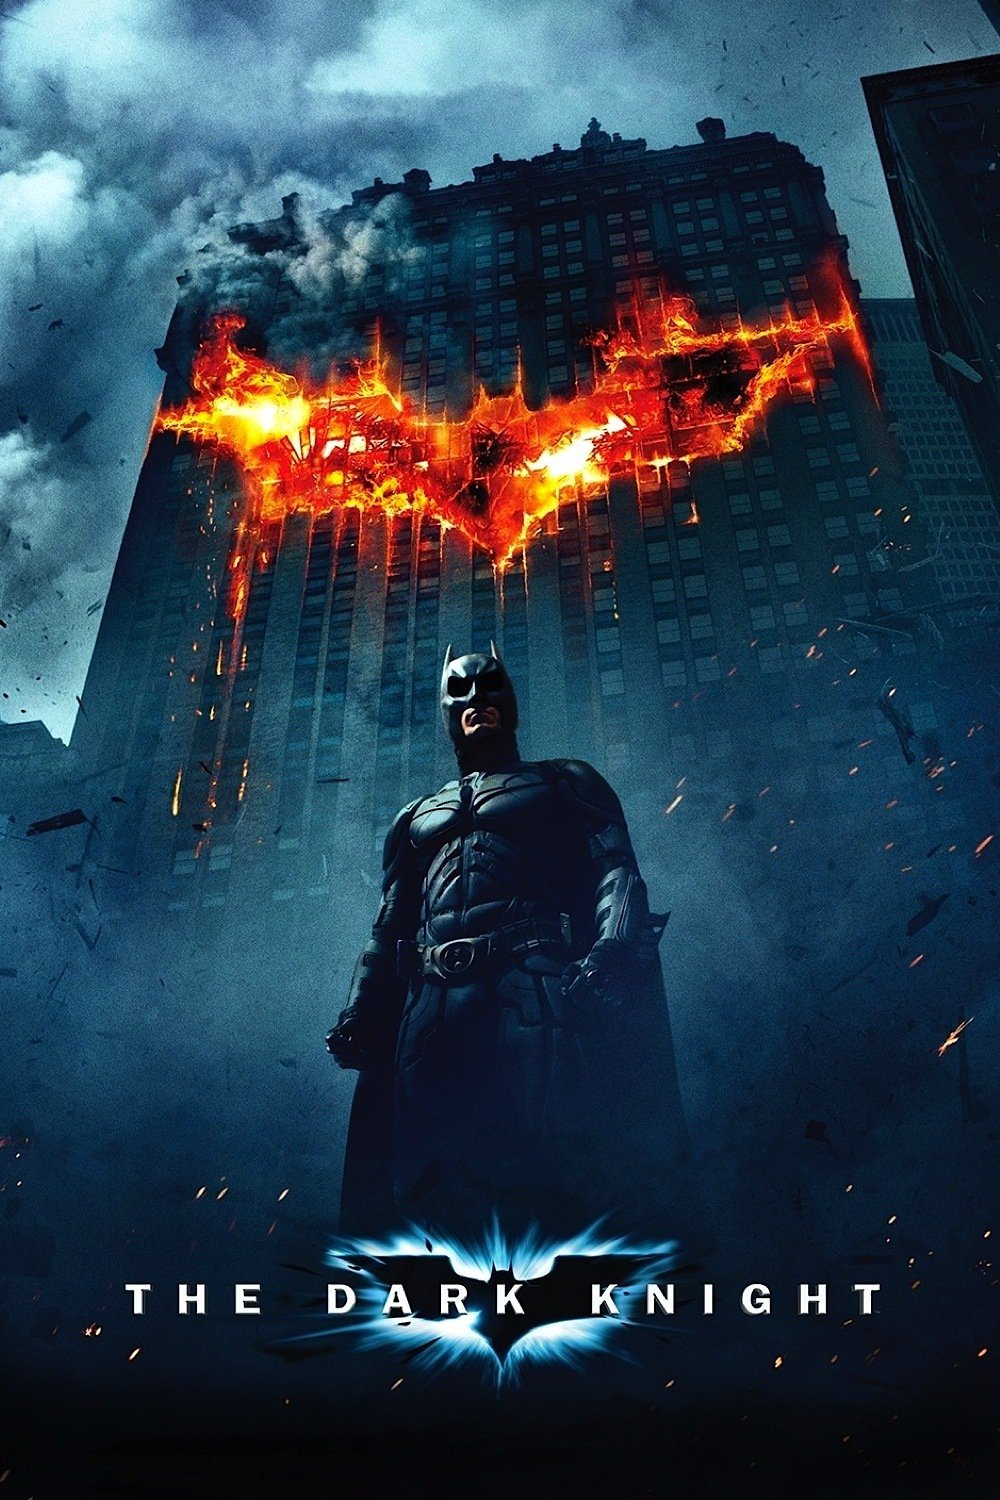 THE DARK KNIGHT (2008) TAMIL DUBBED HD